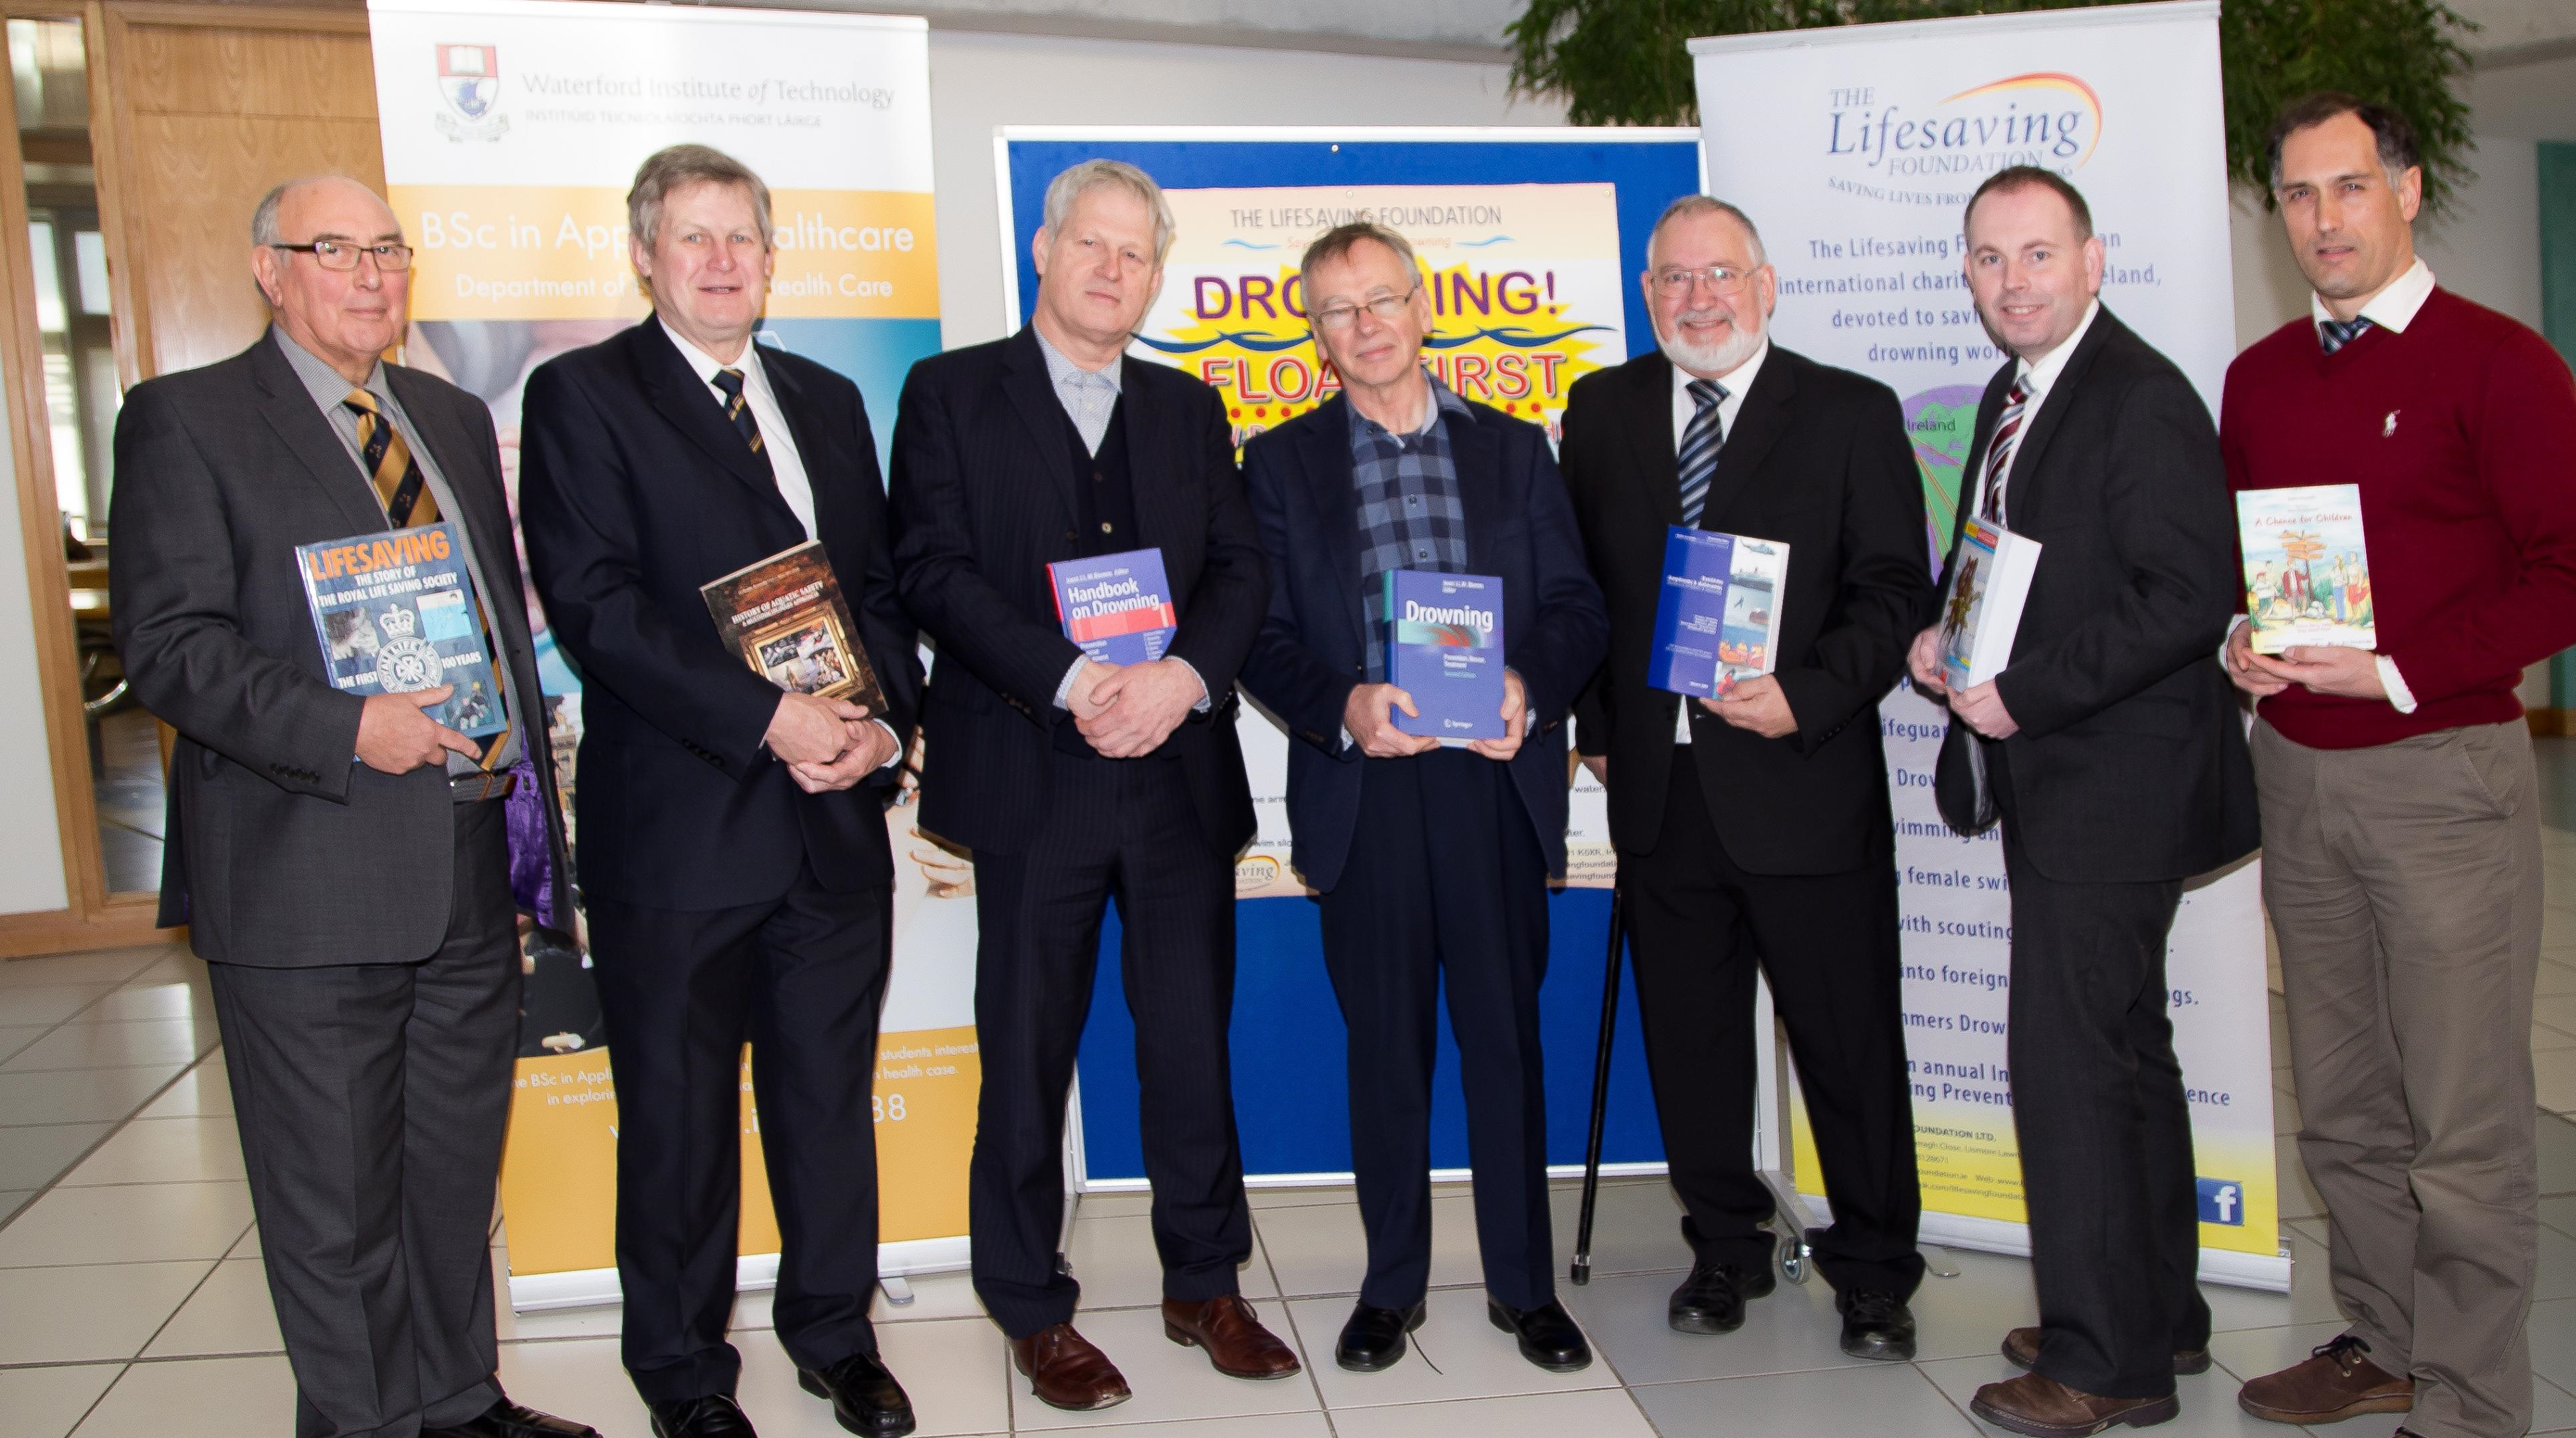 The Lifesaving Foundation presented a large number of drowning books to WIT Library as the start of a major drowning research resource.